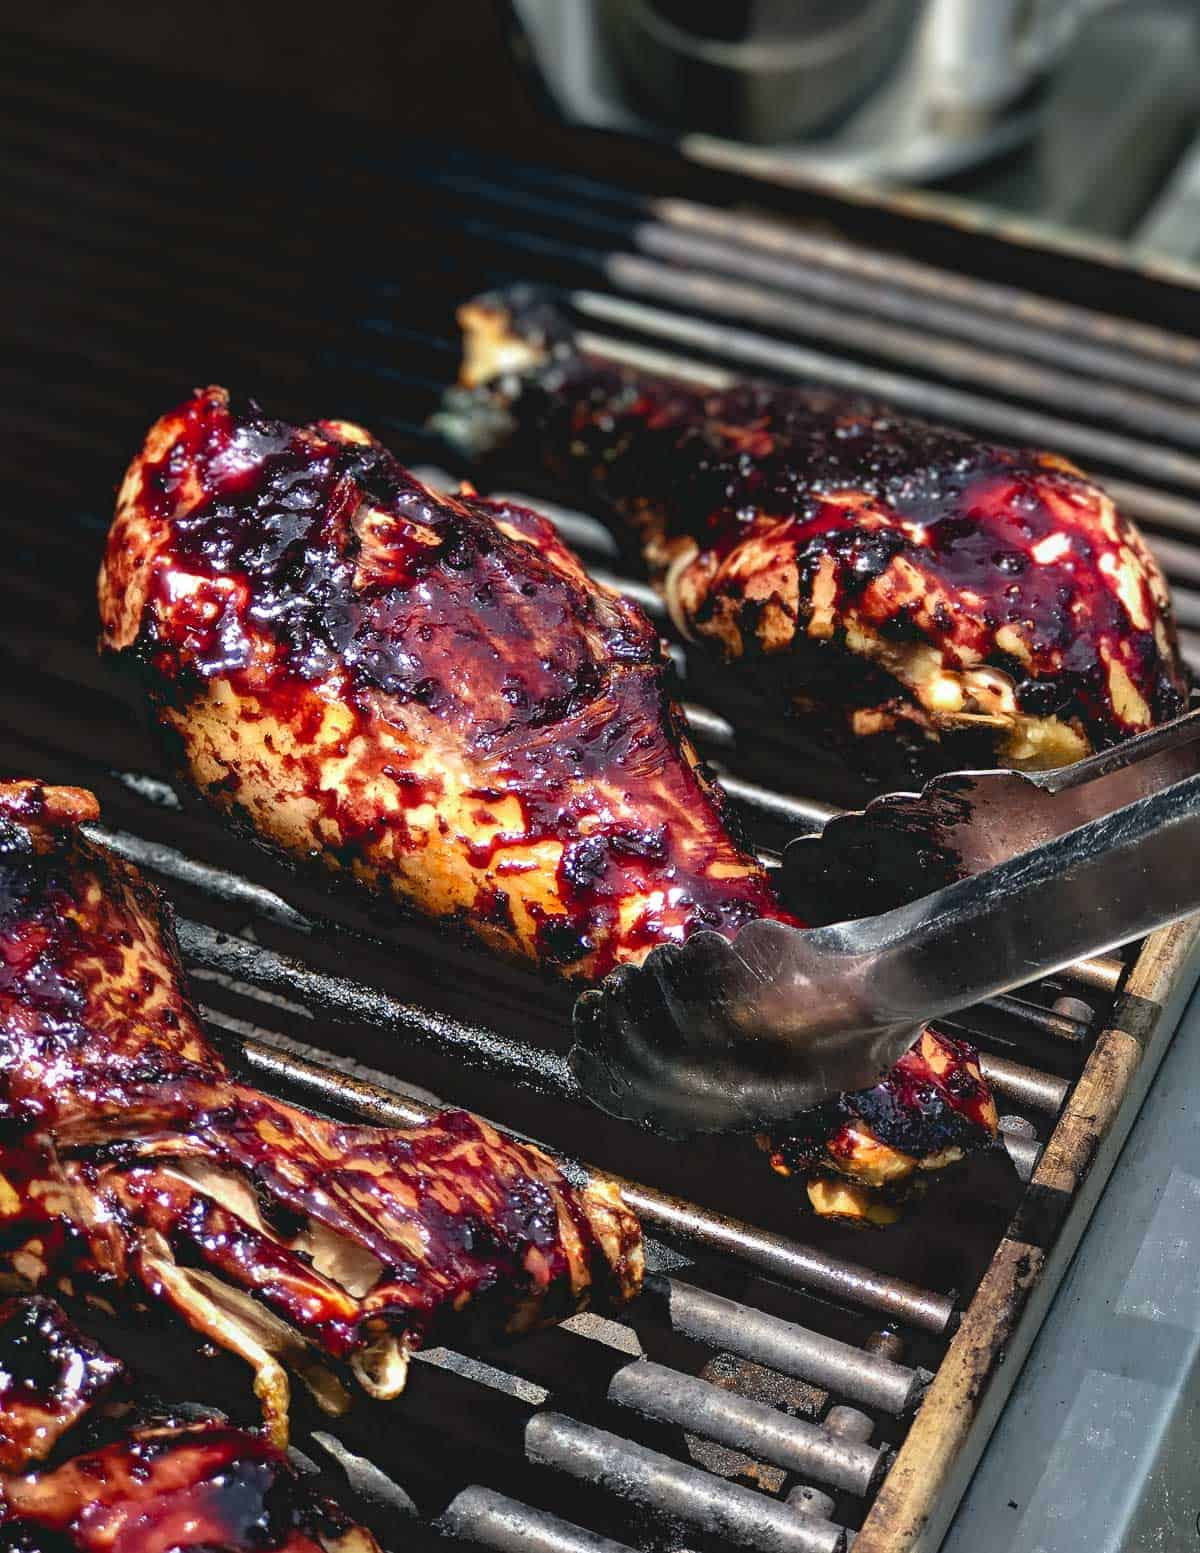 Turkey legs are grilled to perfection and coated with a sweet and tangy blueberry balsamic BBQ sauce.